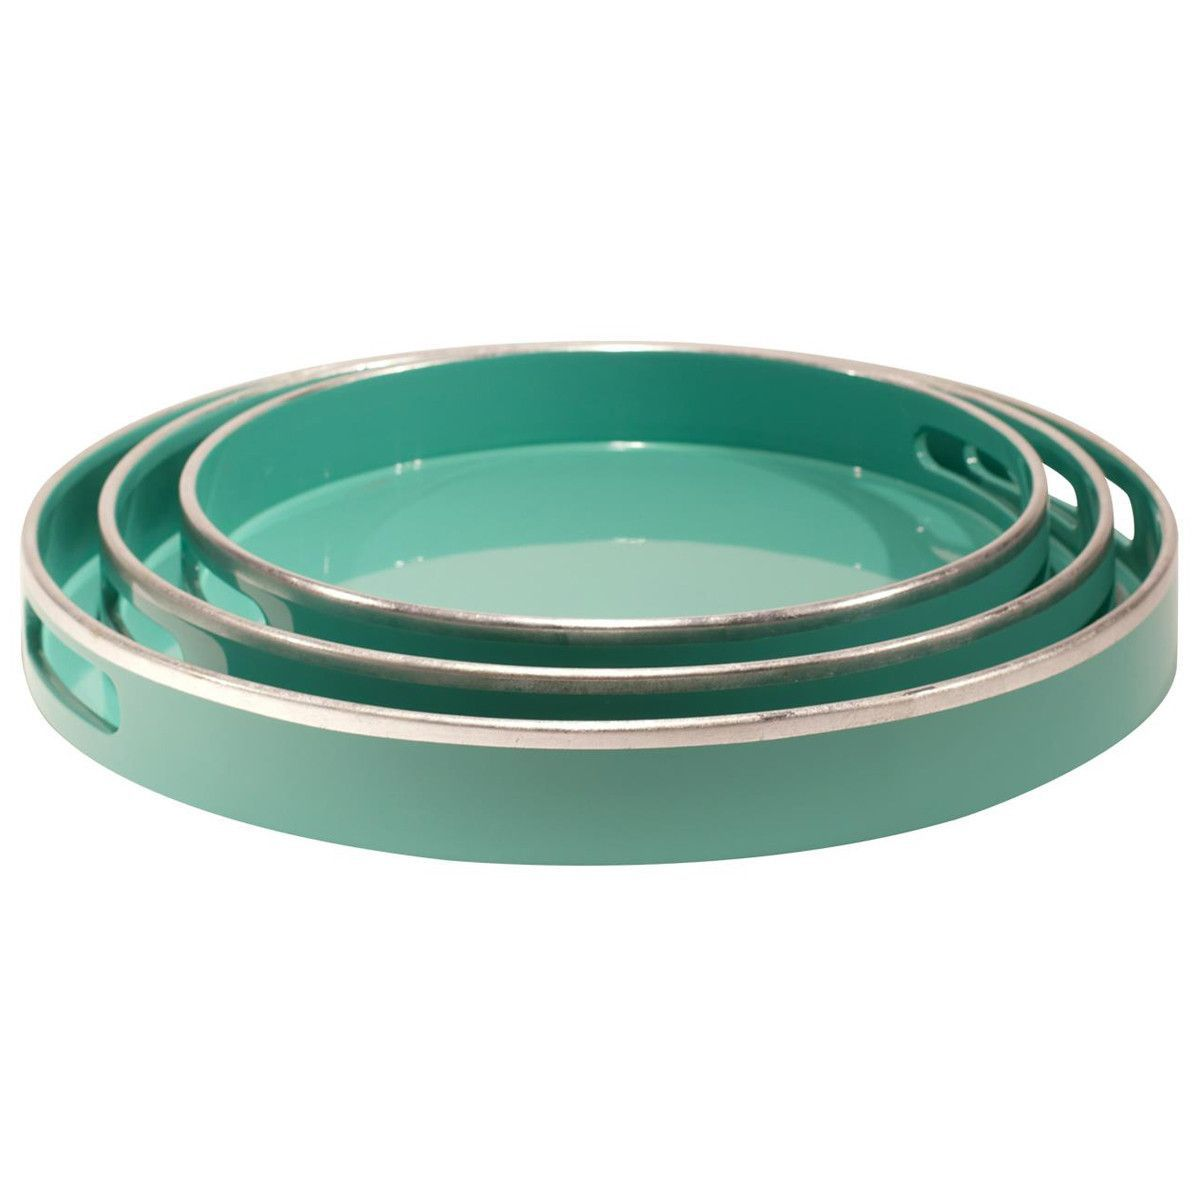 Round Decorative Tray Bungalow 5 Chiffany Round Nesting Trays In Blue  Bungalow And